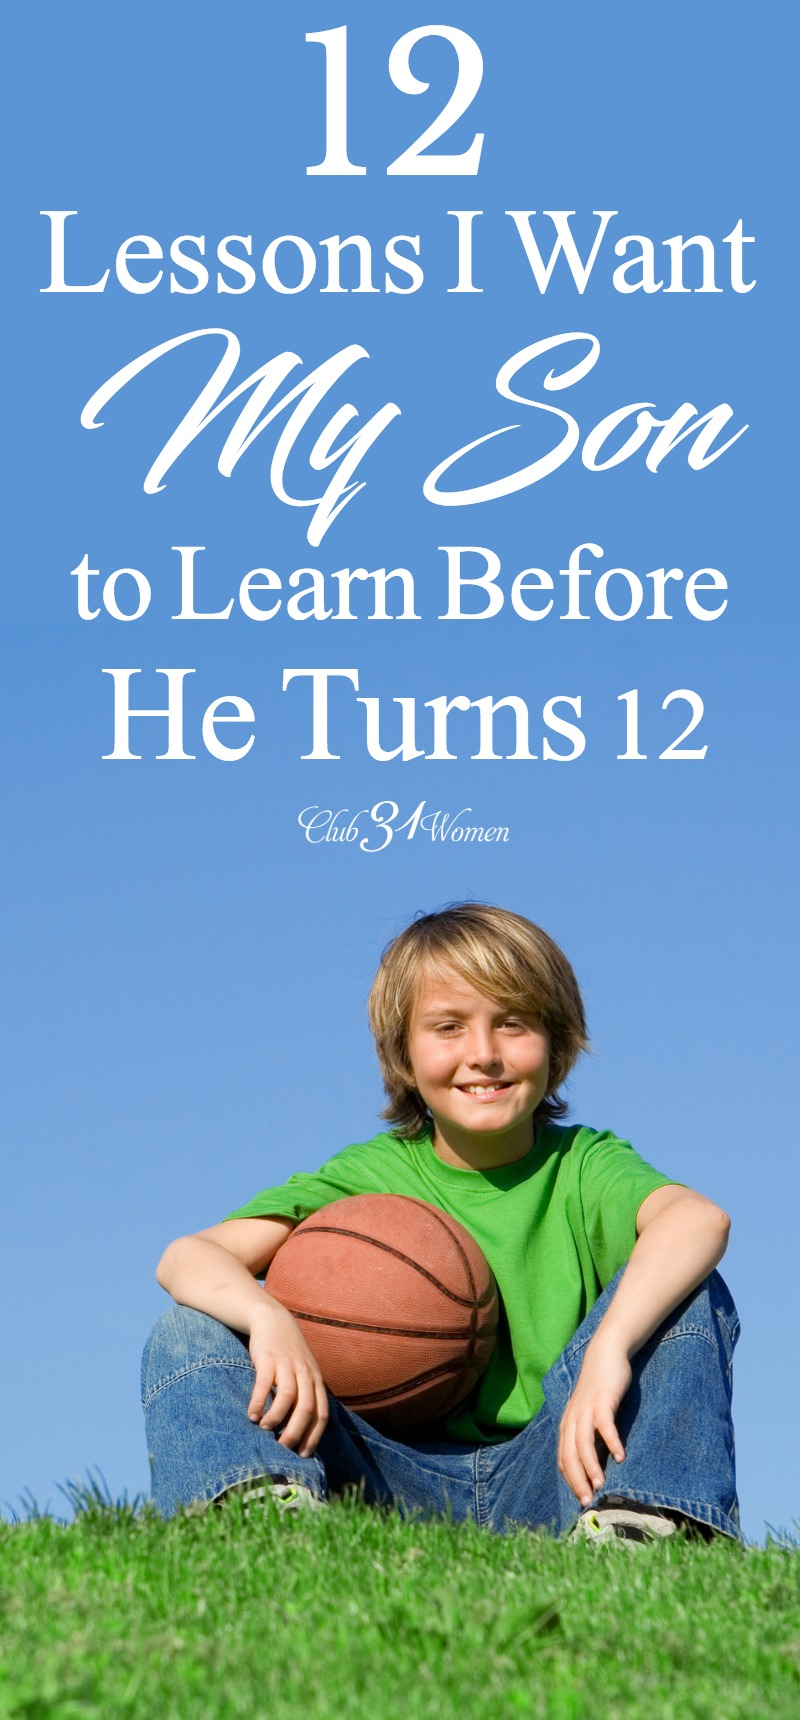 12 Lessons I Want Our Son to Learn Before He Turns 12 via @Club31Women